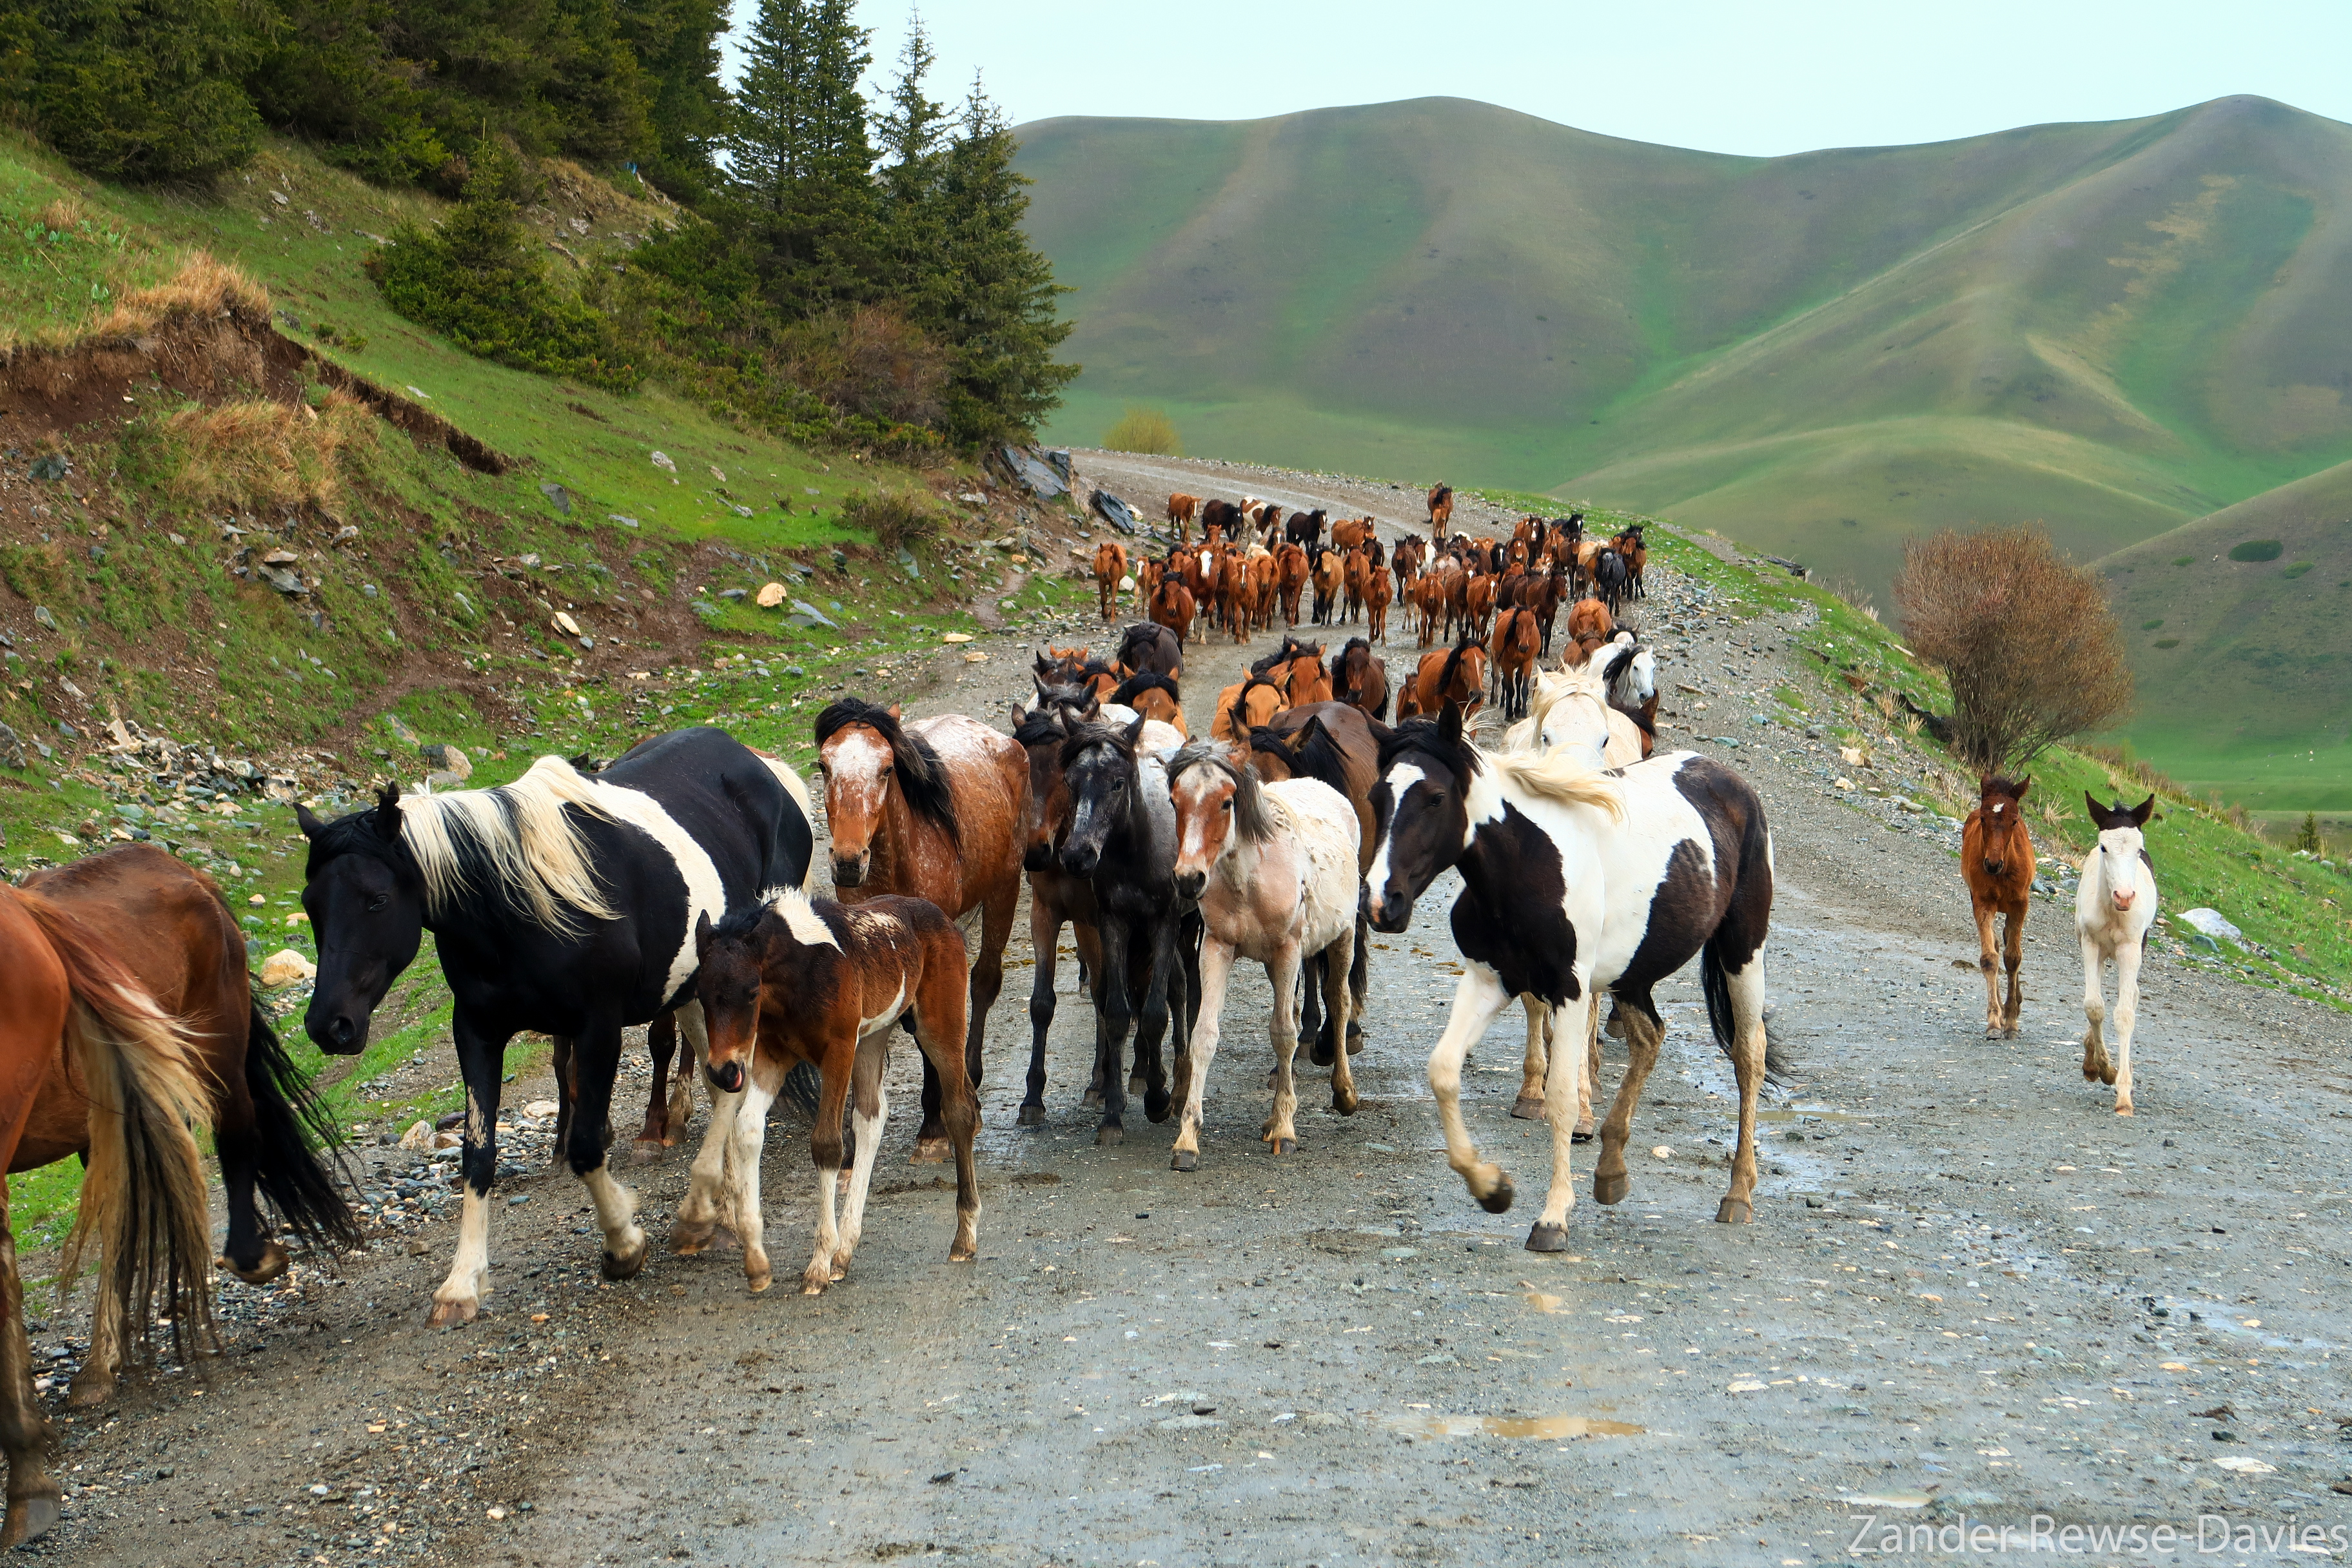 Kyrgyzstan semi-wild horses with foals